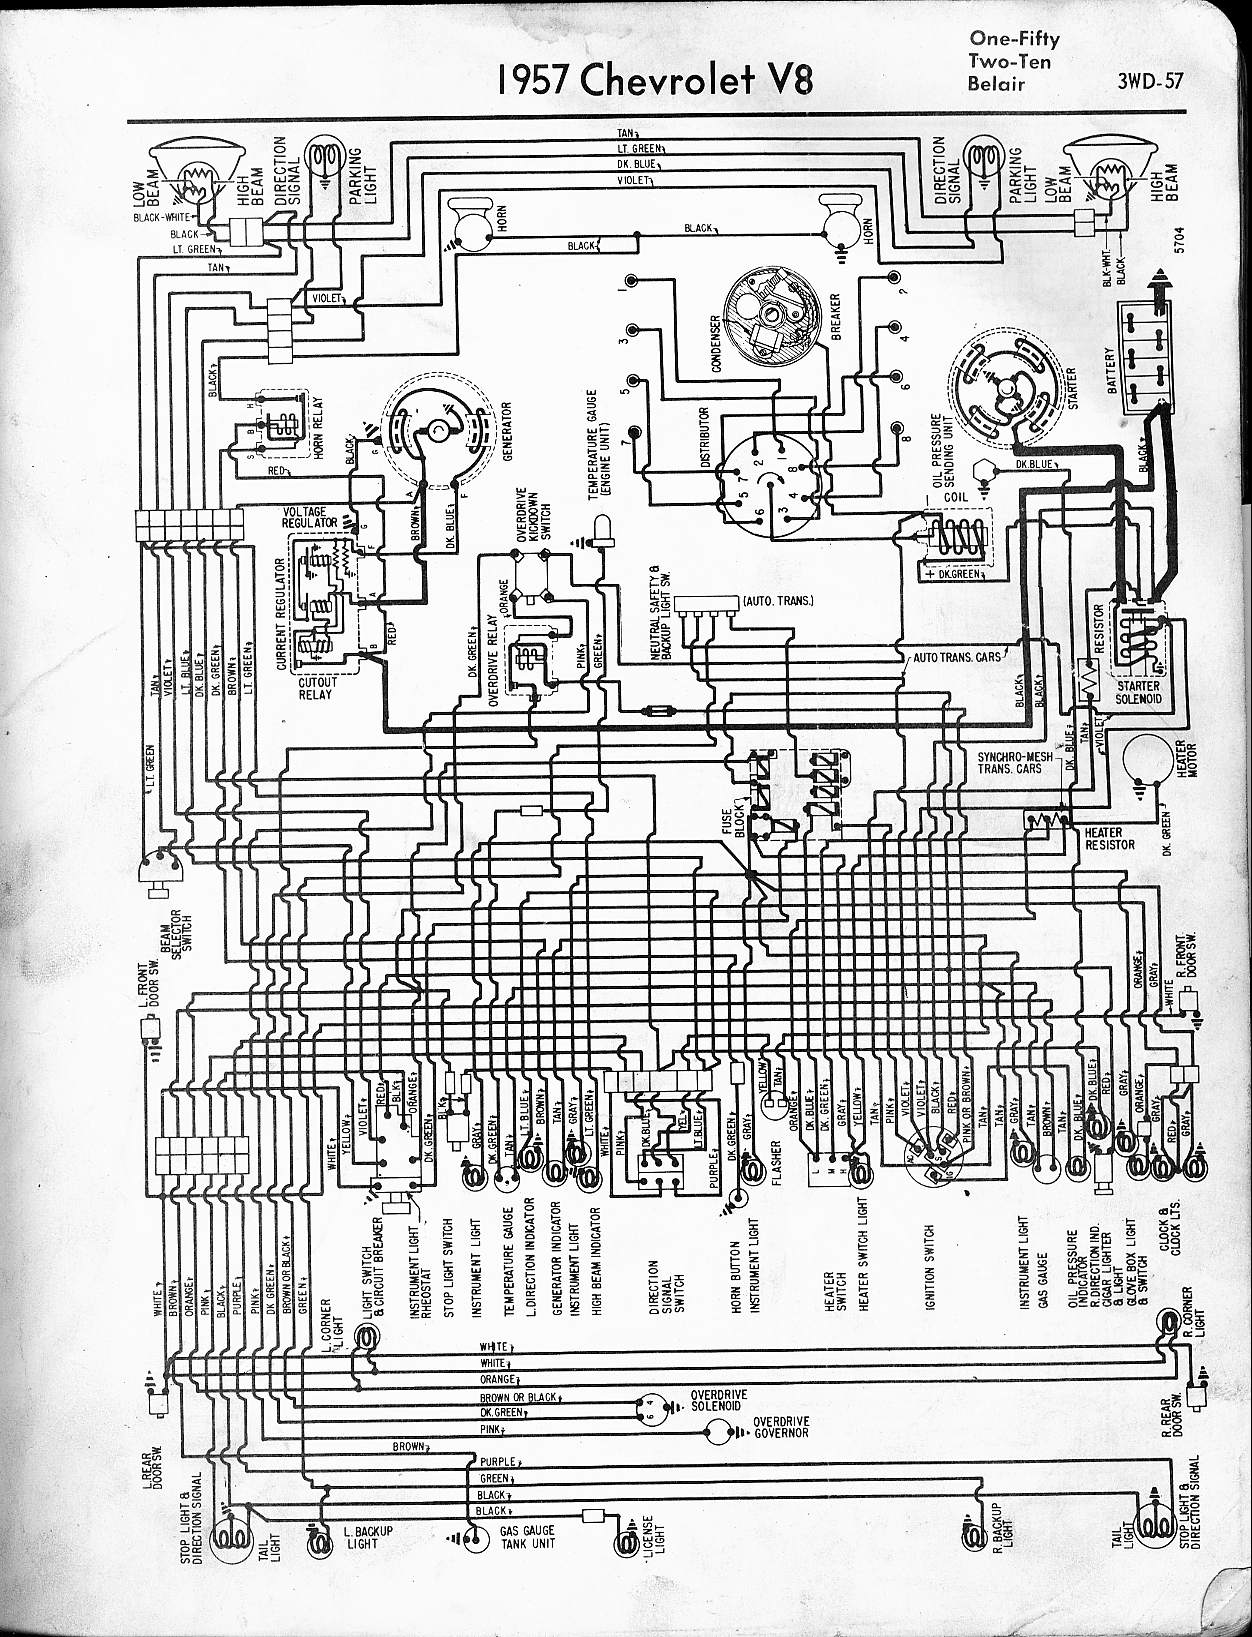 Wiring Diagram Joke Libraries 82 Chevy Truck Harness Funny Diagrams Todaysfunny Simple 1982 Jeep Ignition Switch